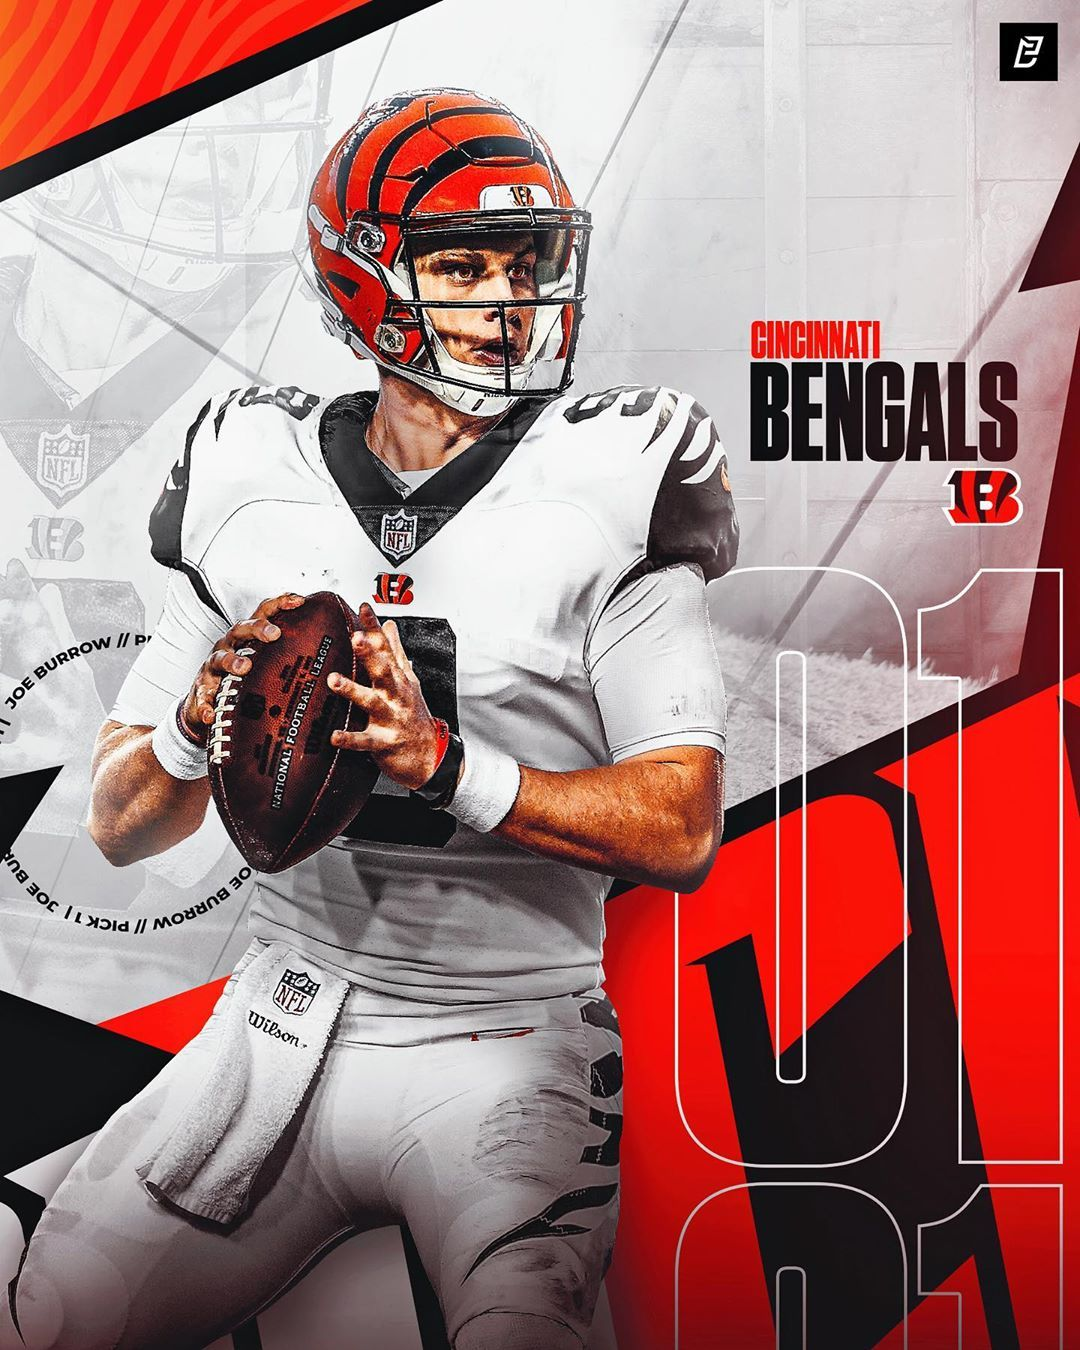 Enrique Castellano On Instagram With The First Pick In The 2020 Nfl Draft The Cincinnati Bengals Are In 2020 Cincinnati Bengals Bengals Cincinnati Bengals Football